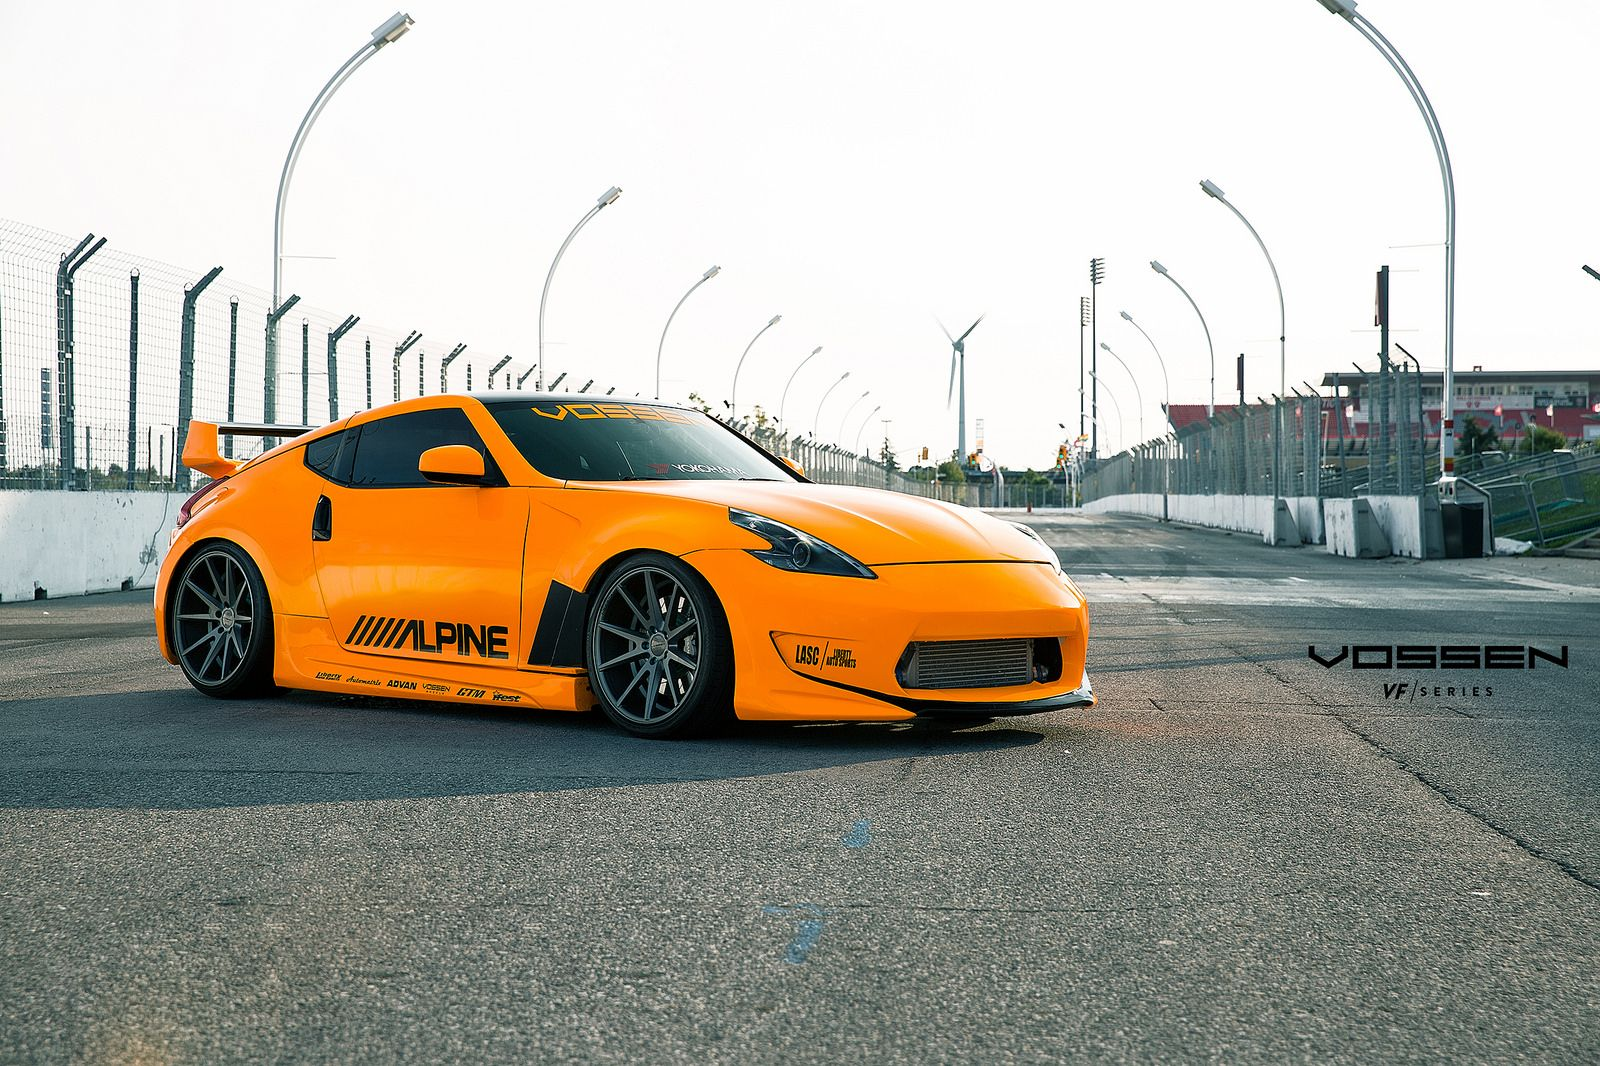 Amuse TT Nissan 370Z - Vossen VFS1 - Matte Graphite | Flickr - Photo Sharing!